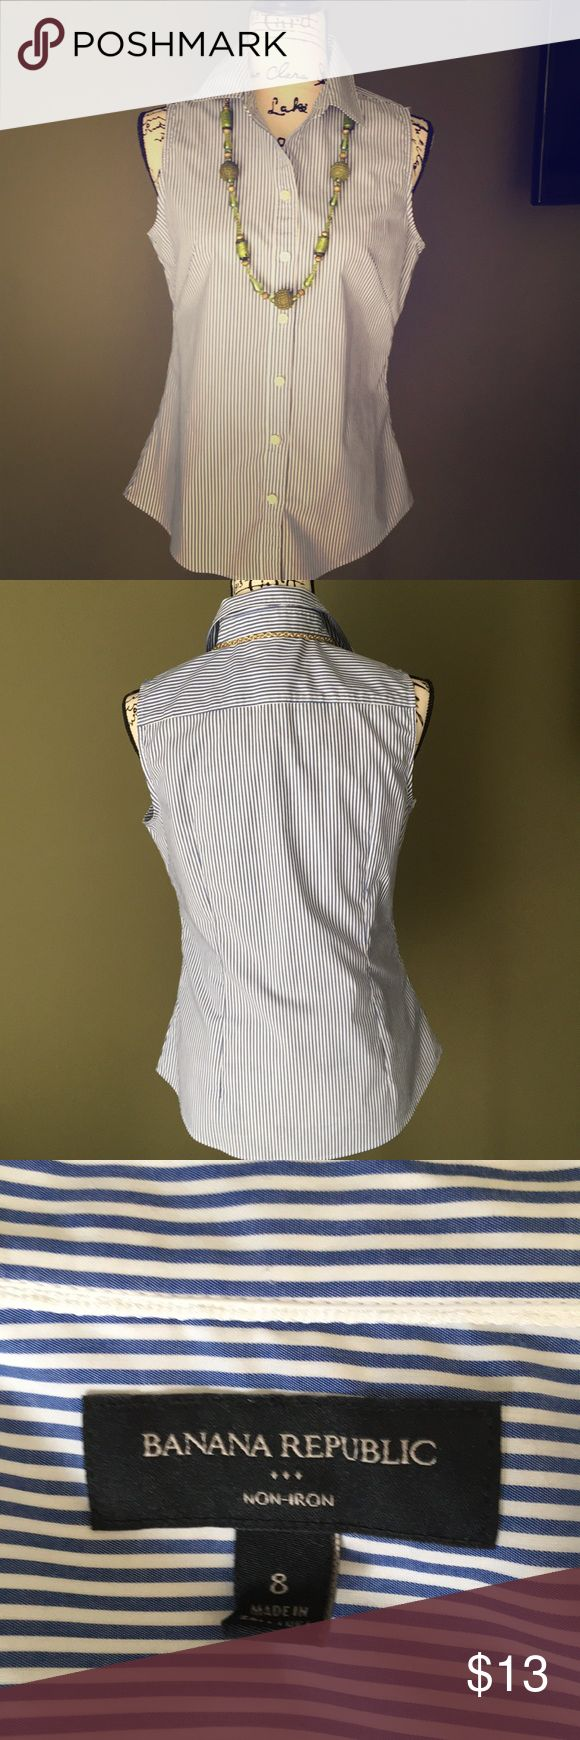 "Ralph Lauren sleeveless non iron shirt Almost new😉;Size medium but for 34"" bust(I bought it and it is tight on the breast area):-( Tops Blouses"